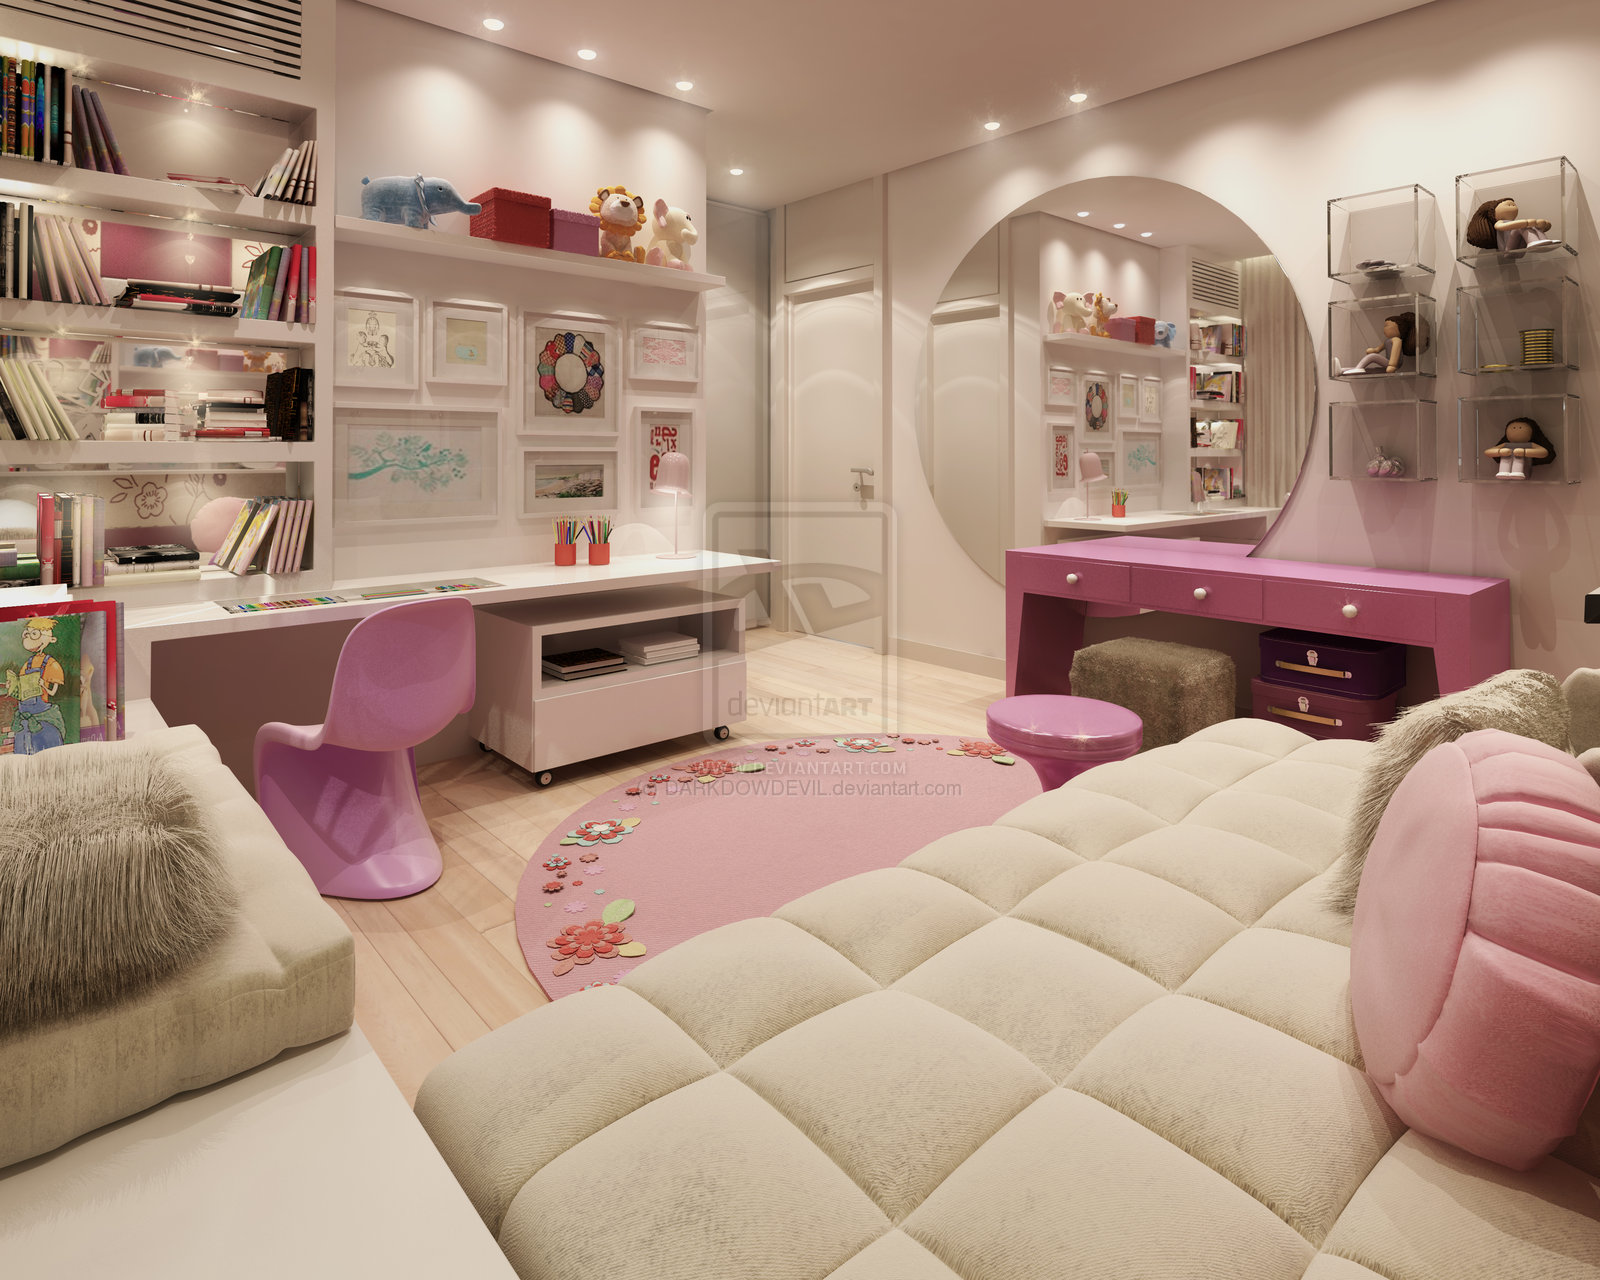 Teenage room designs - Photos of girls bedroom ...